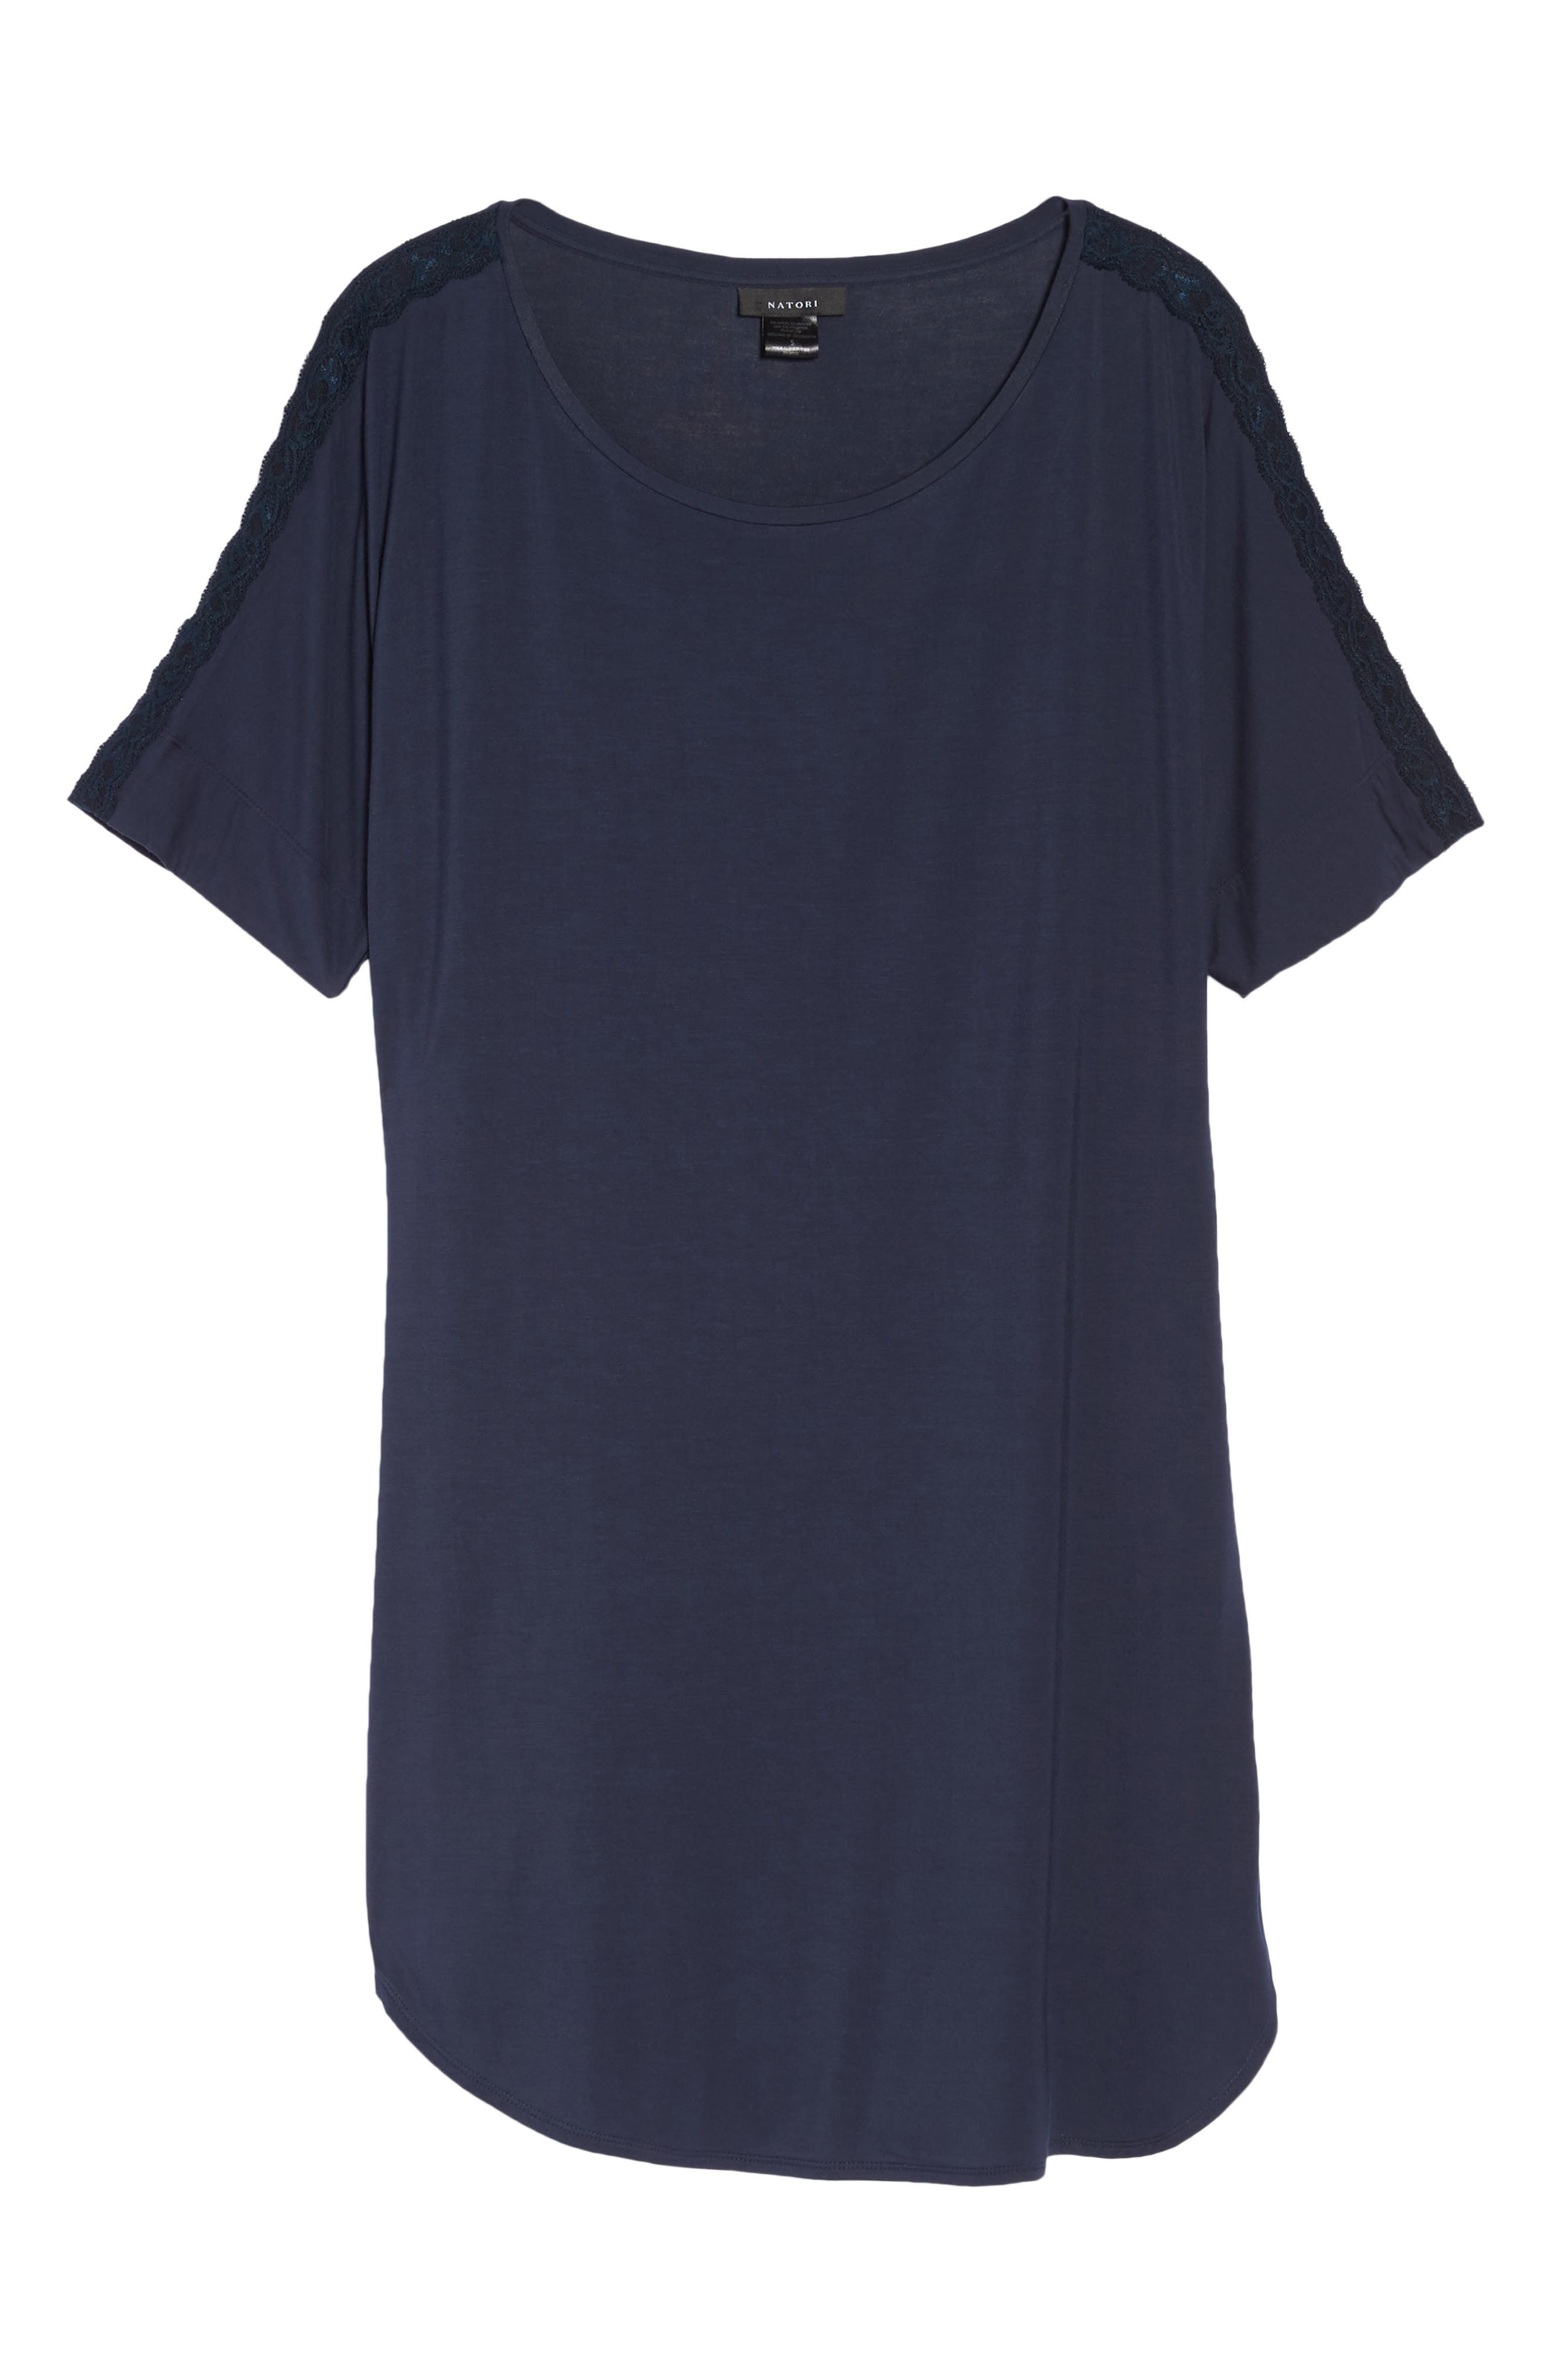 Feathers Essential Sleep Shirt,                             Alternate thumbnail 6, color,                             NIGHT BLUE